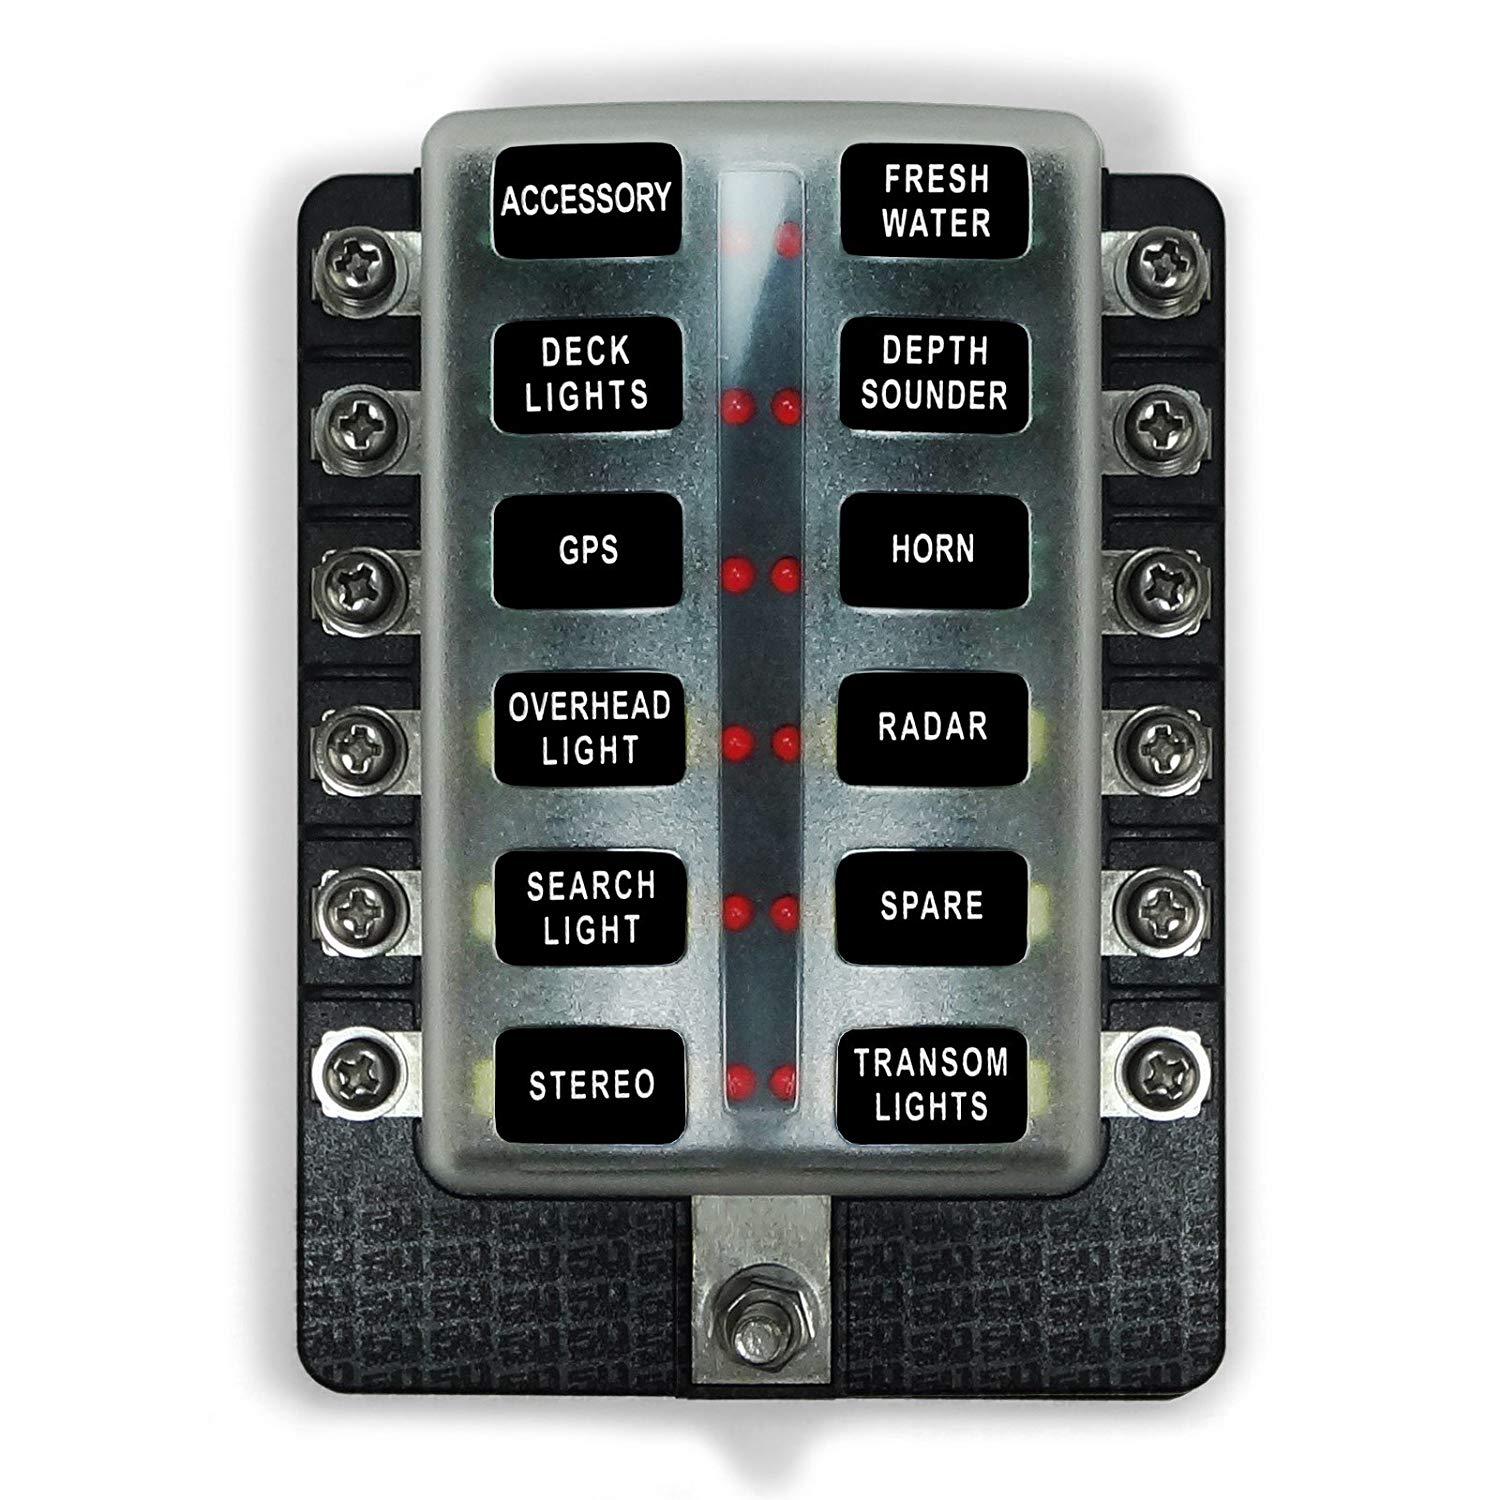 cheap fuse box, find fuse box deals on line at alibaba com marine fuse box wiring get quotations · 50 caliber racing universal 12 way standard led circuit blade fuse box kit suitable for automotive